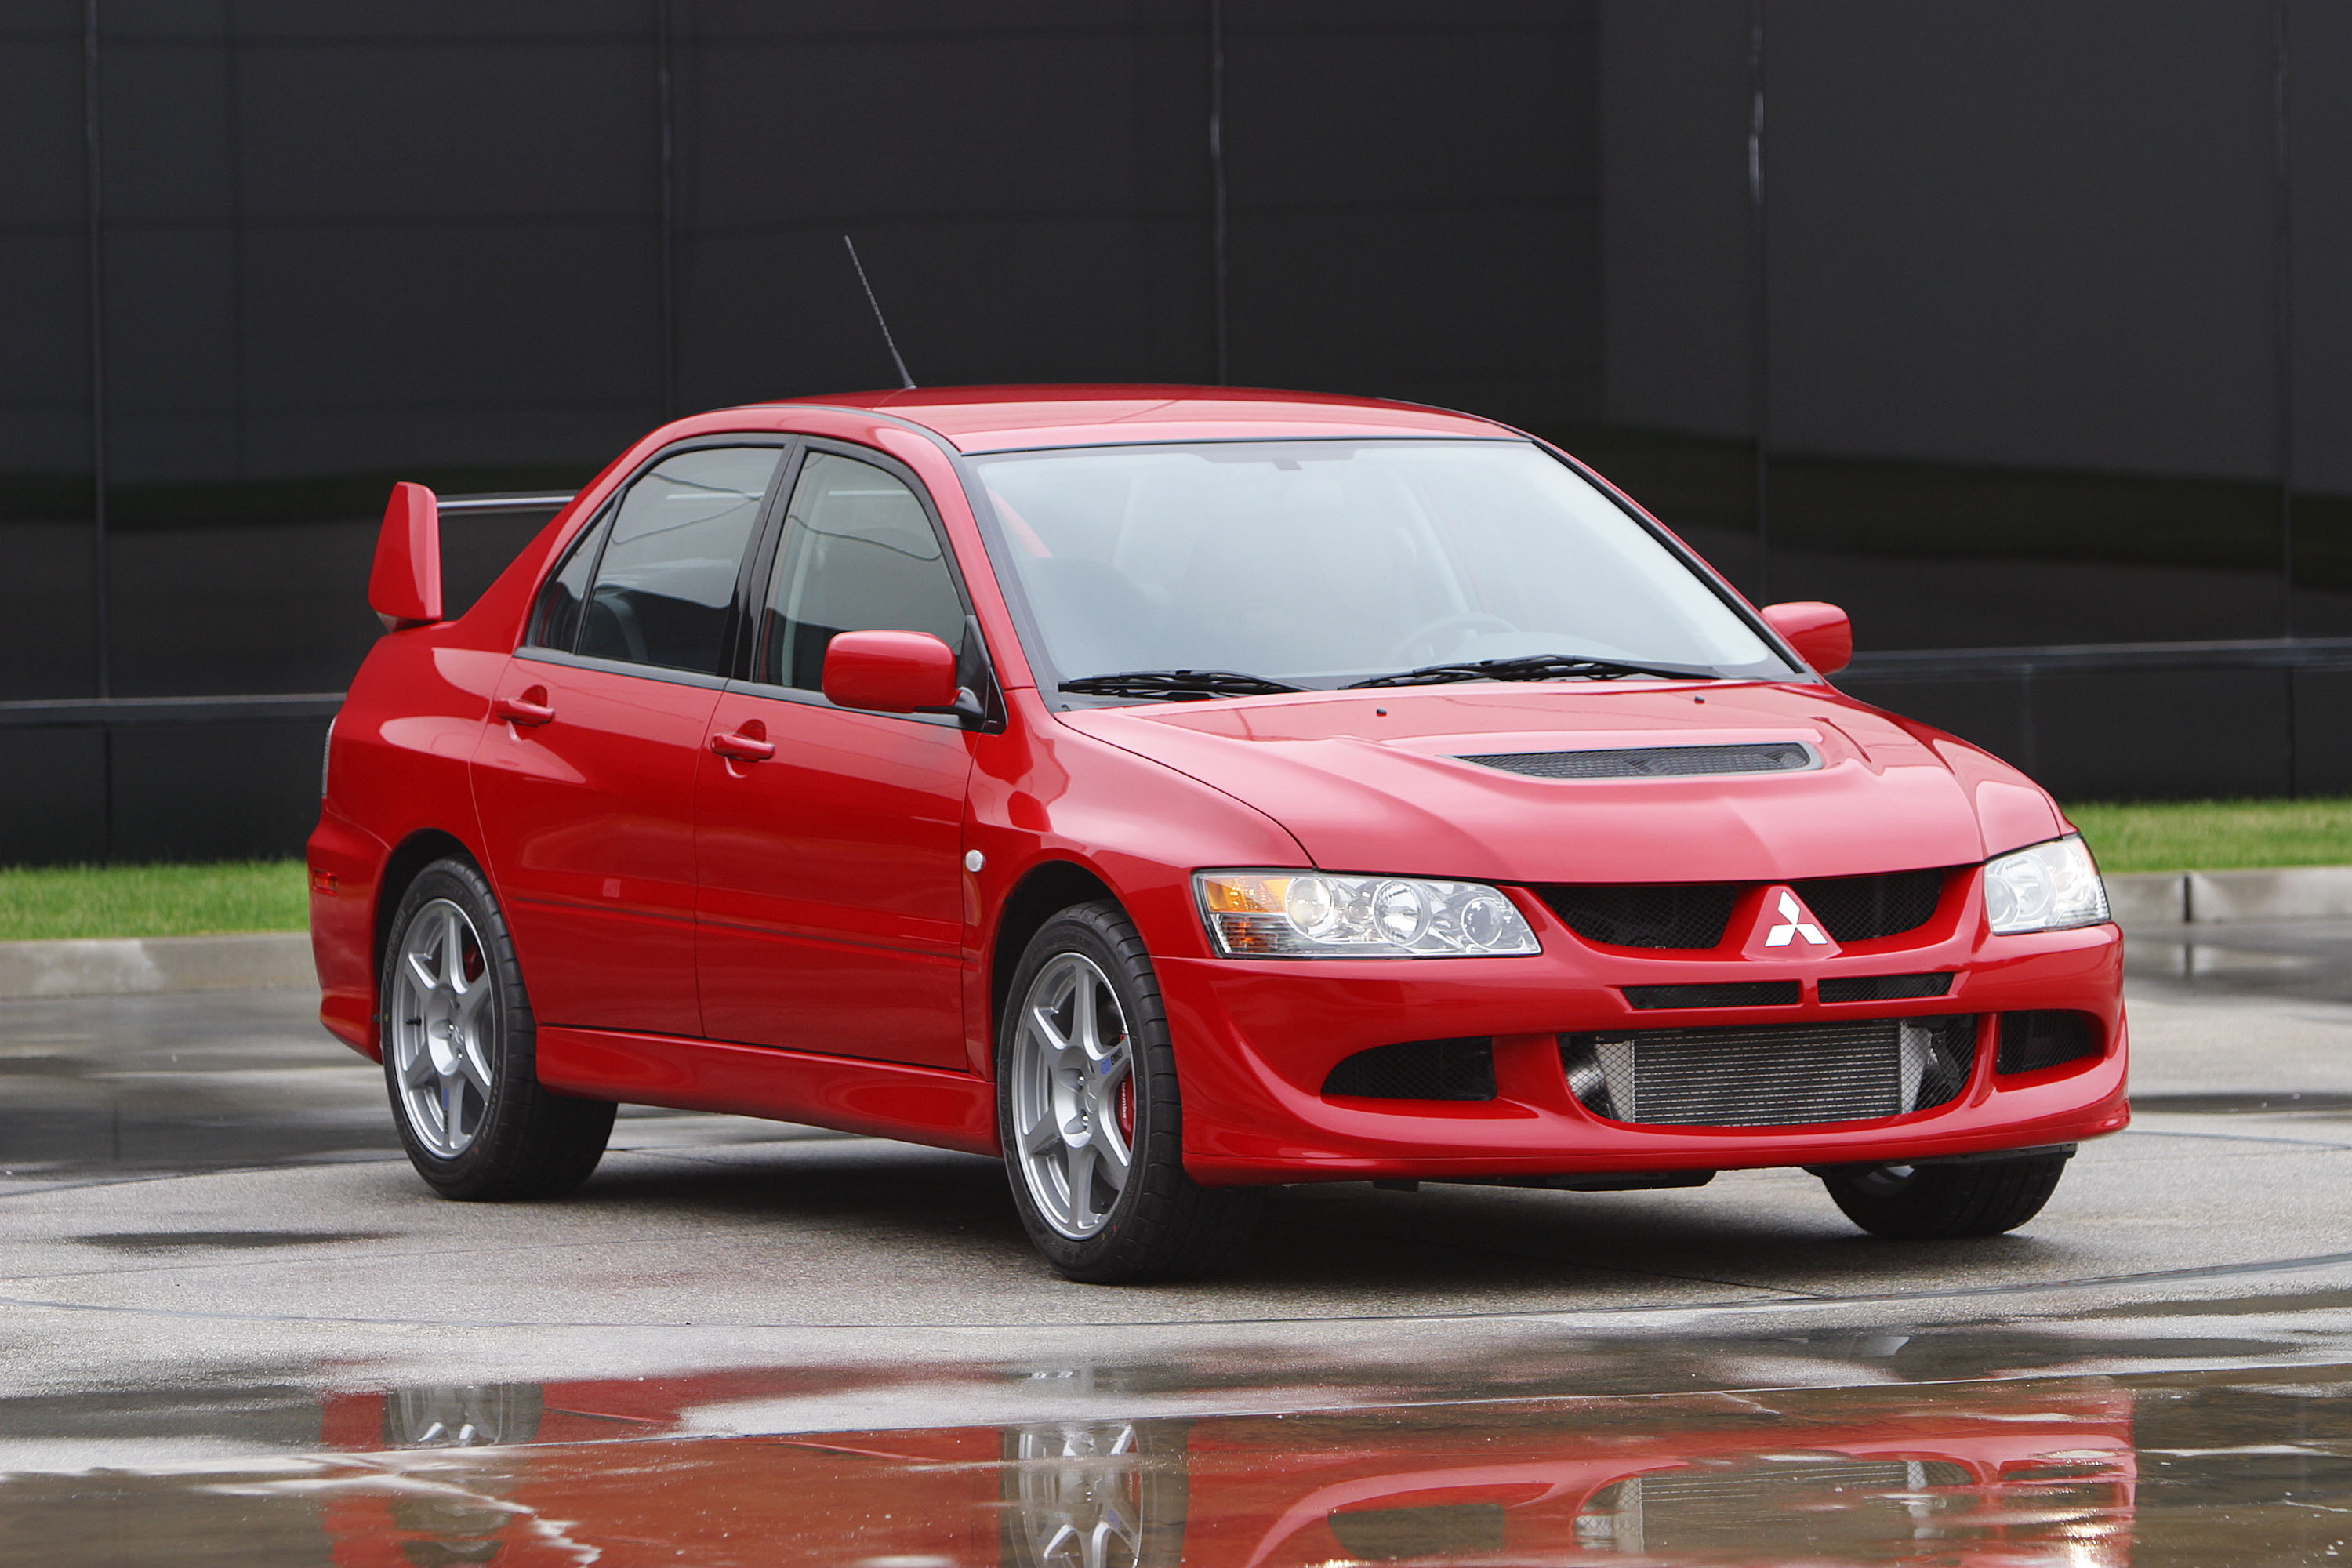 2003 mitsubishi lancer evolution fuel infection